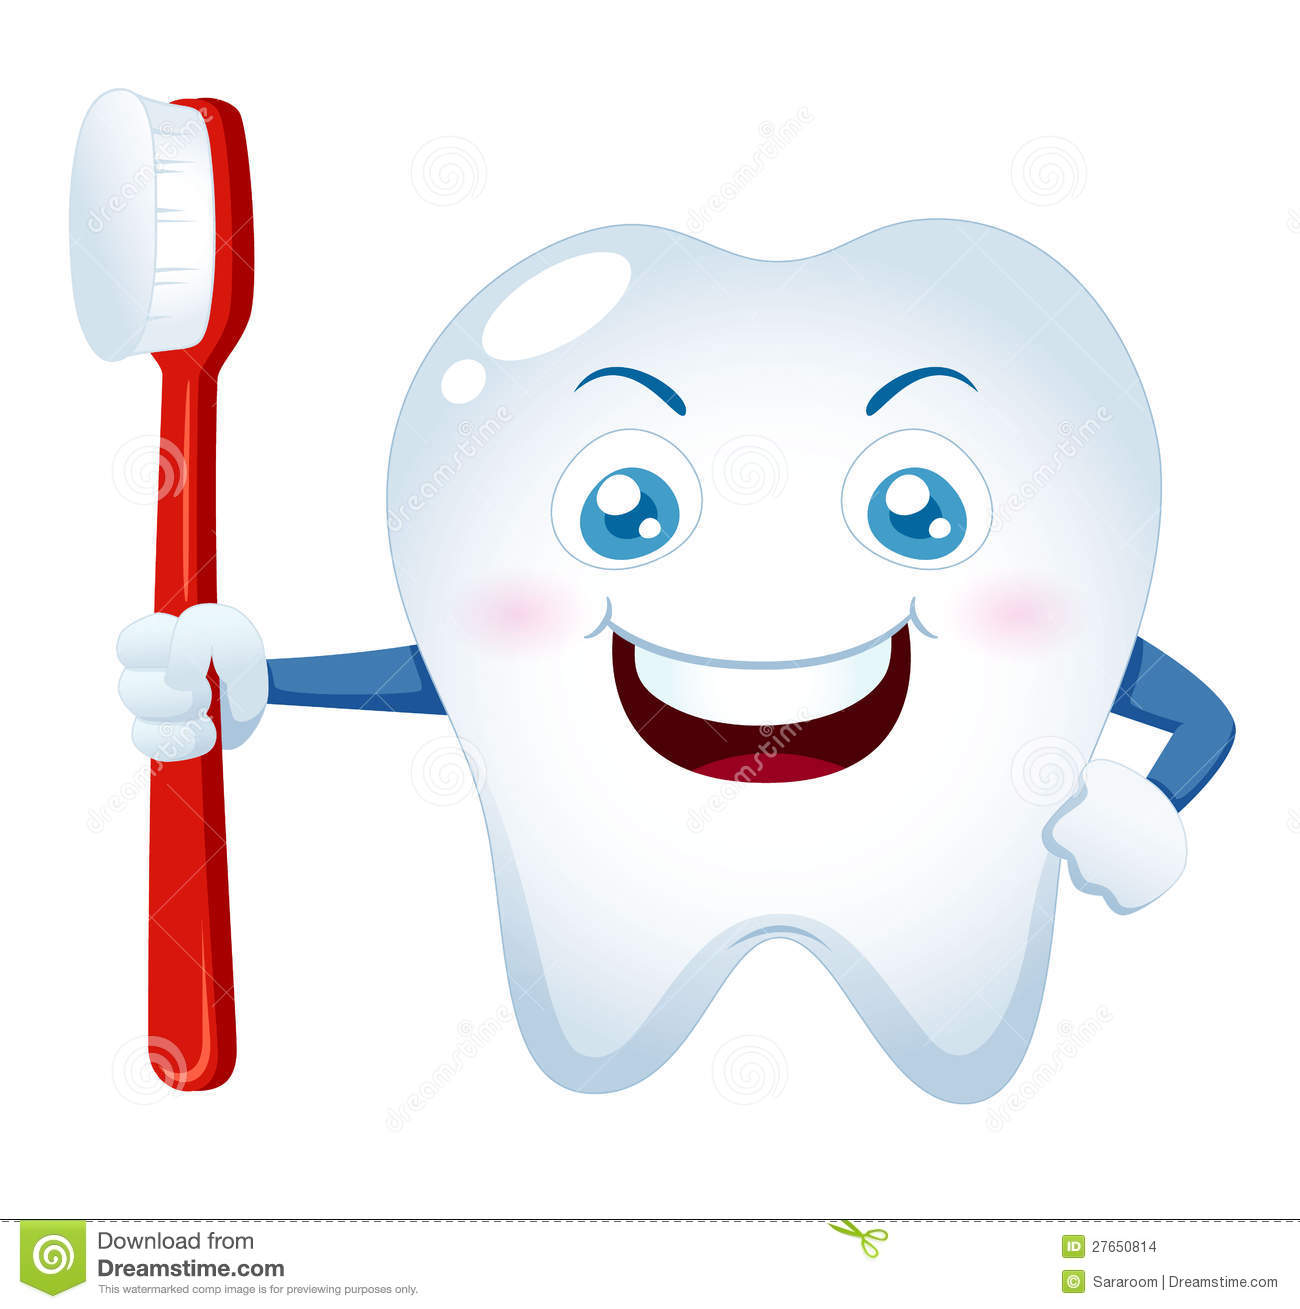 d6397bf2e Cartoon Tooth Holding A Toothbrush Stock Vector - Illustration of ...